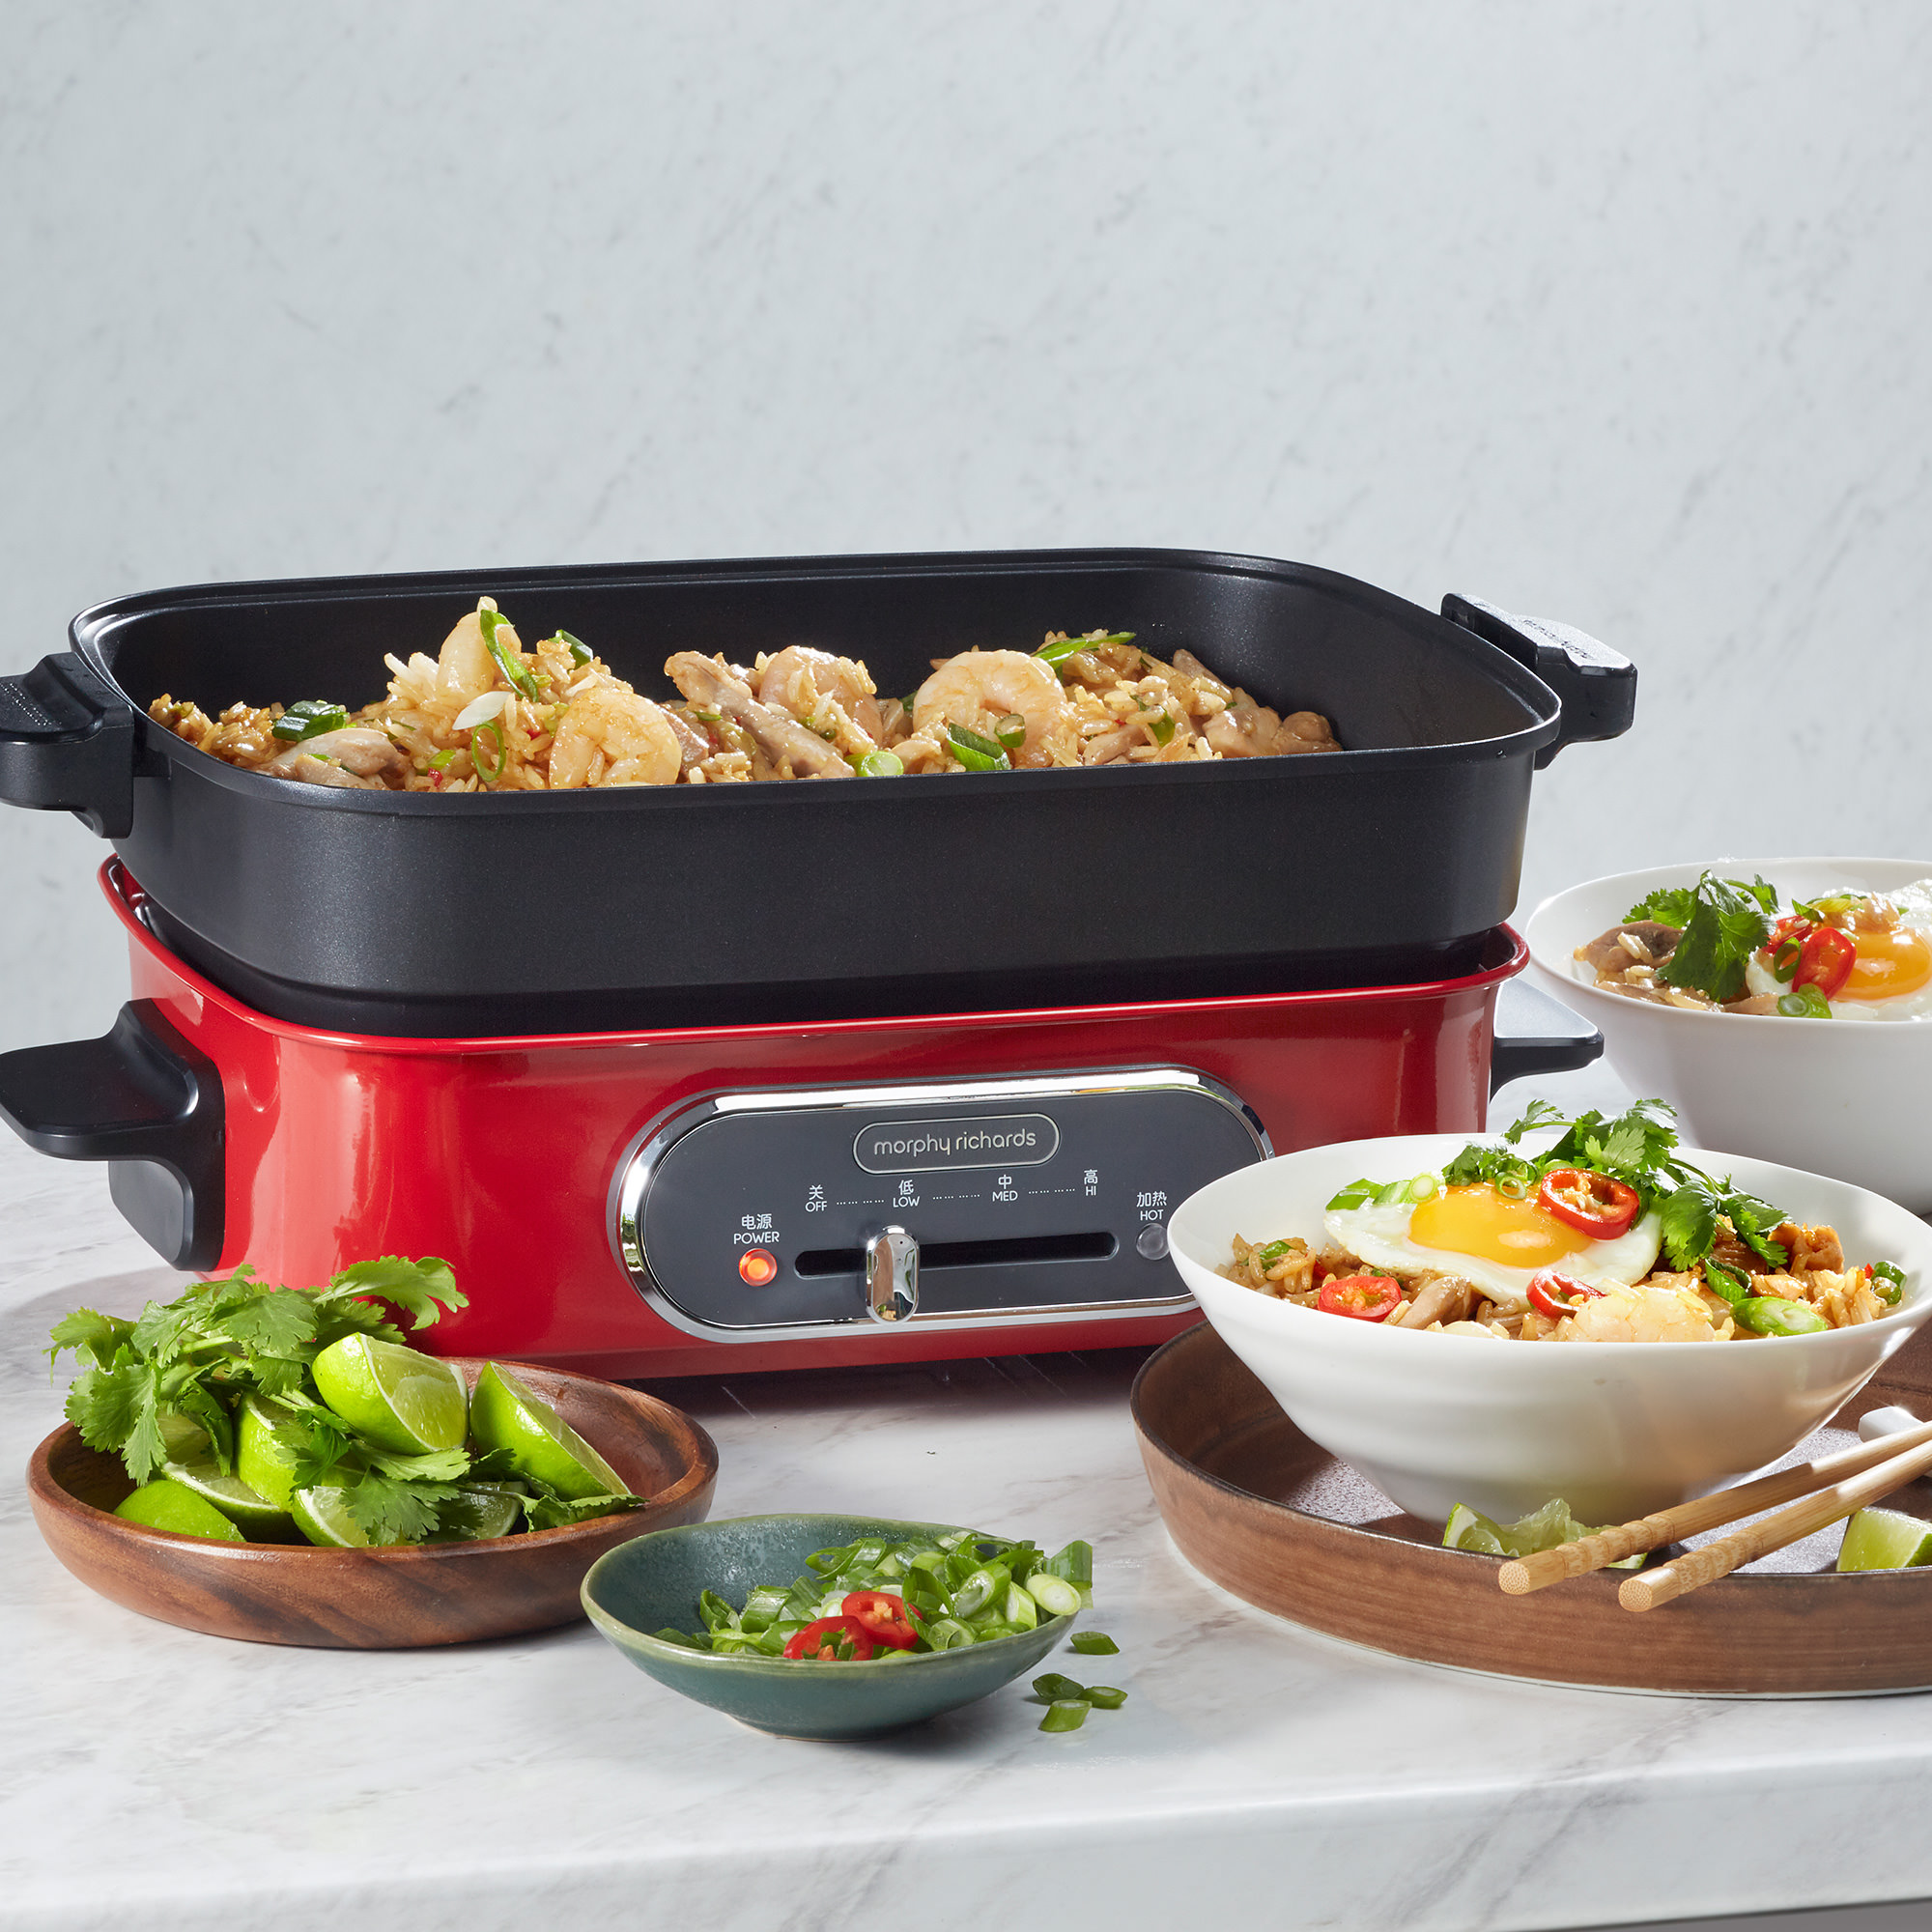 Morphy Richards Multi Function Cooking Pot Red image #4